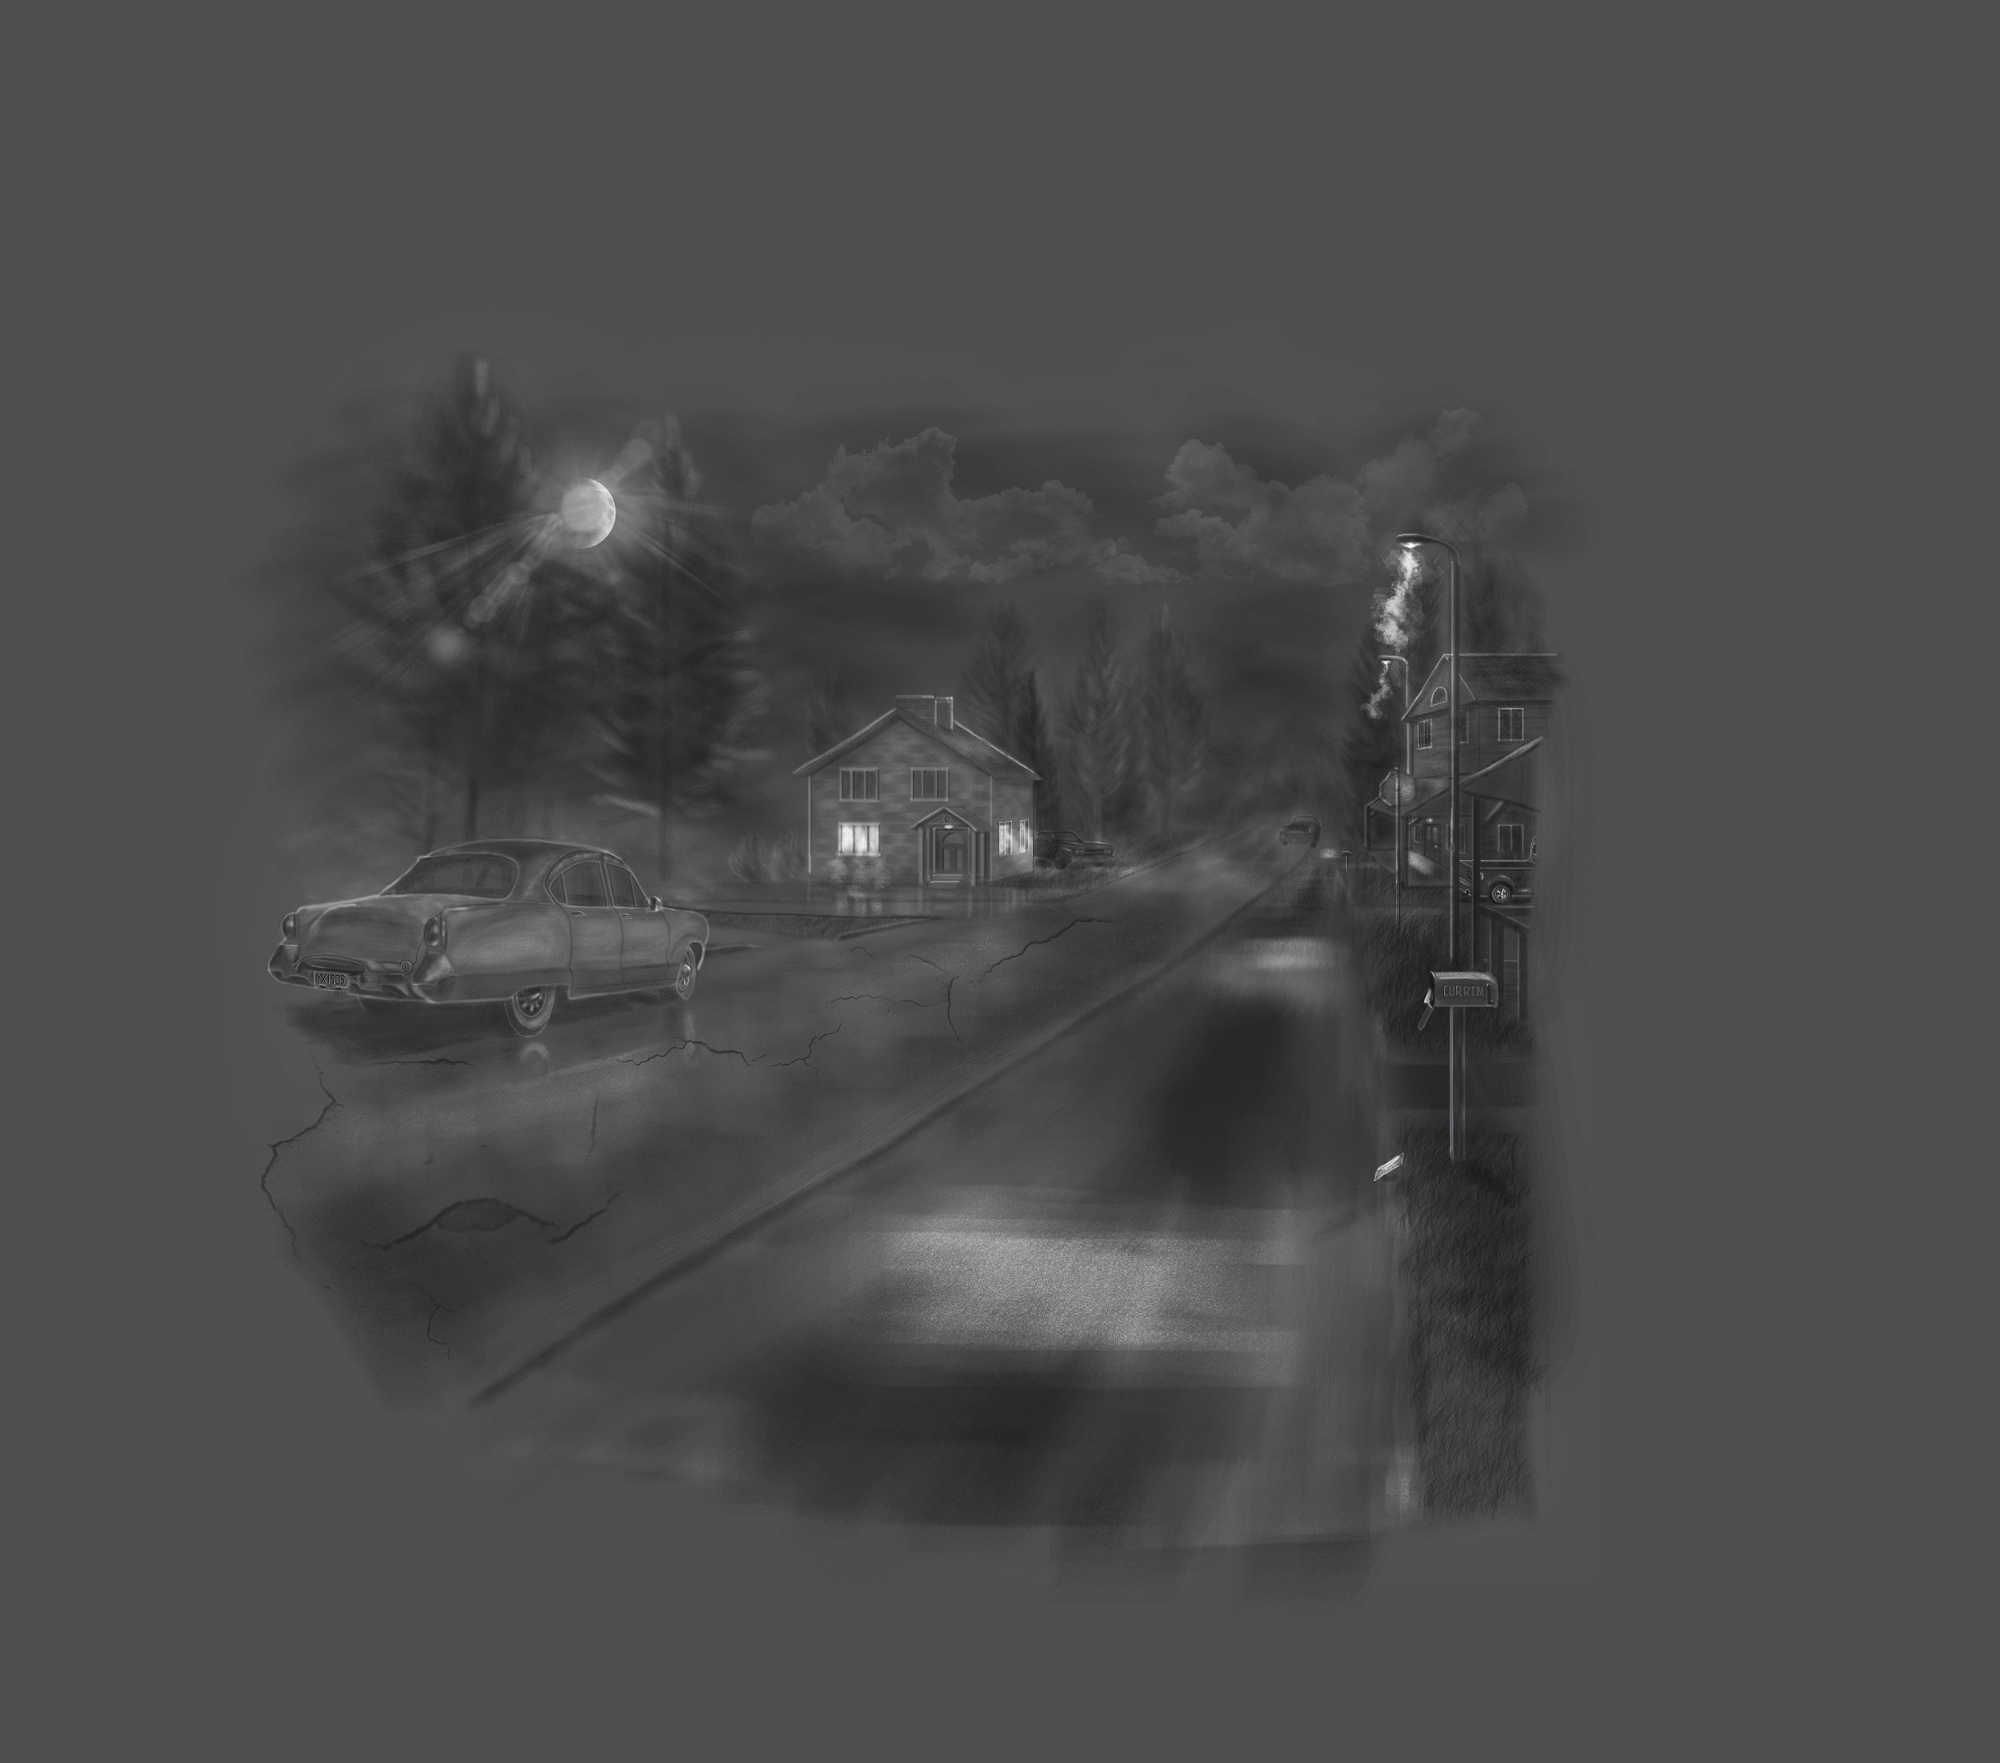 Black and White drawing of a dark street, you can see a house in the distance with a car parked on the road in front of you.